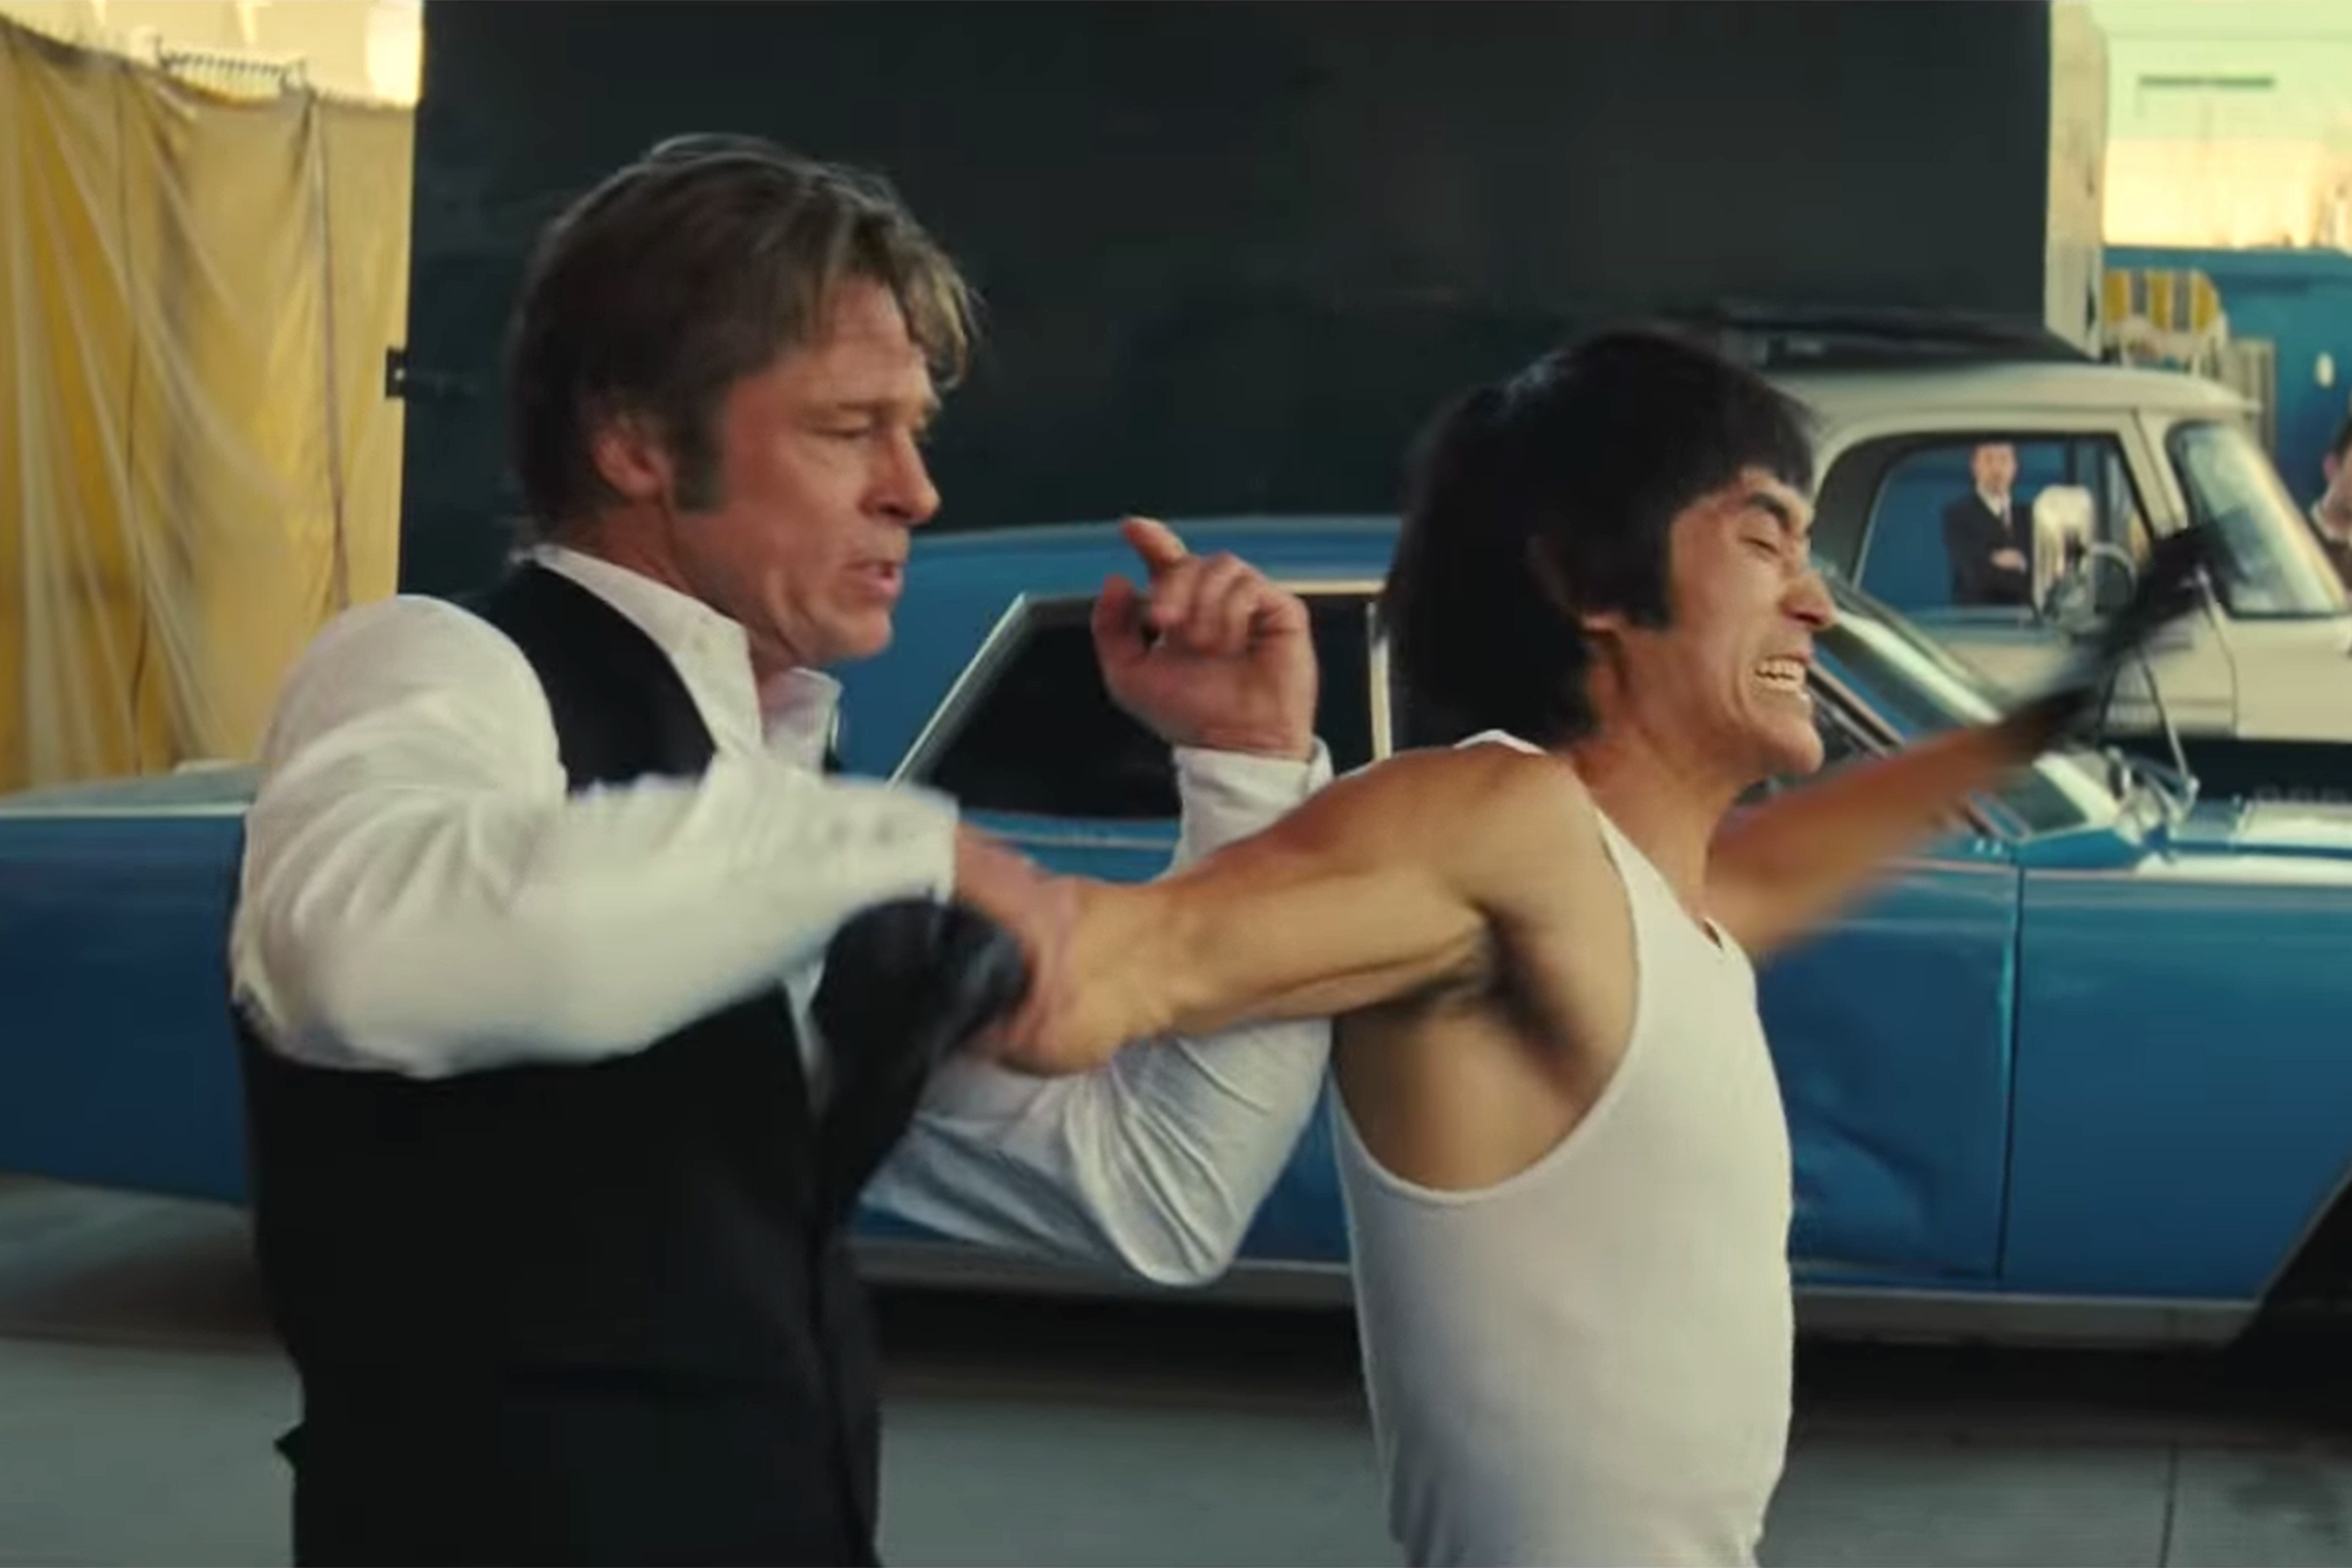 Brad Pitt Bruce Lee (Mike Moh) Once Upon a Time in Hollywoodhttps://www.youtube.com/watch?v=Scf8nIJCvs4Credit: Sony Pictures Entertainment